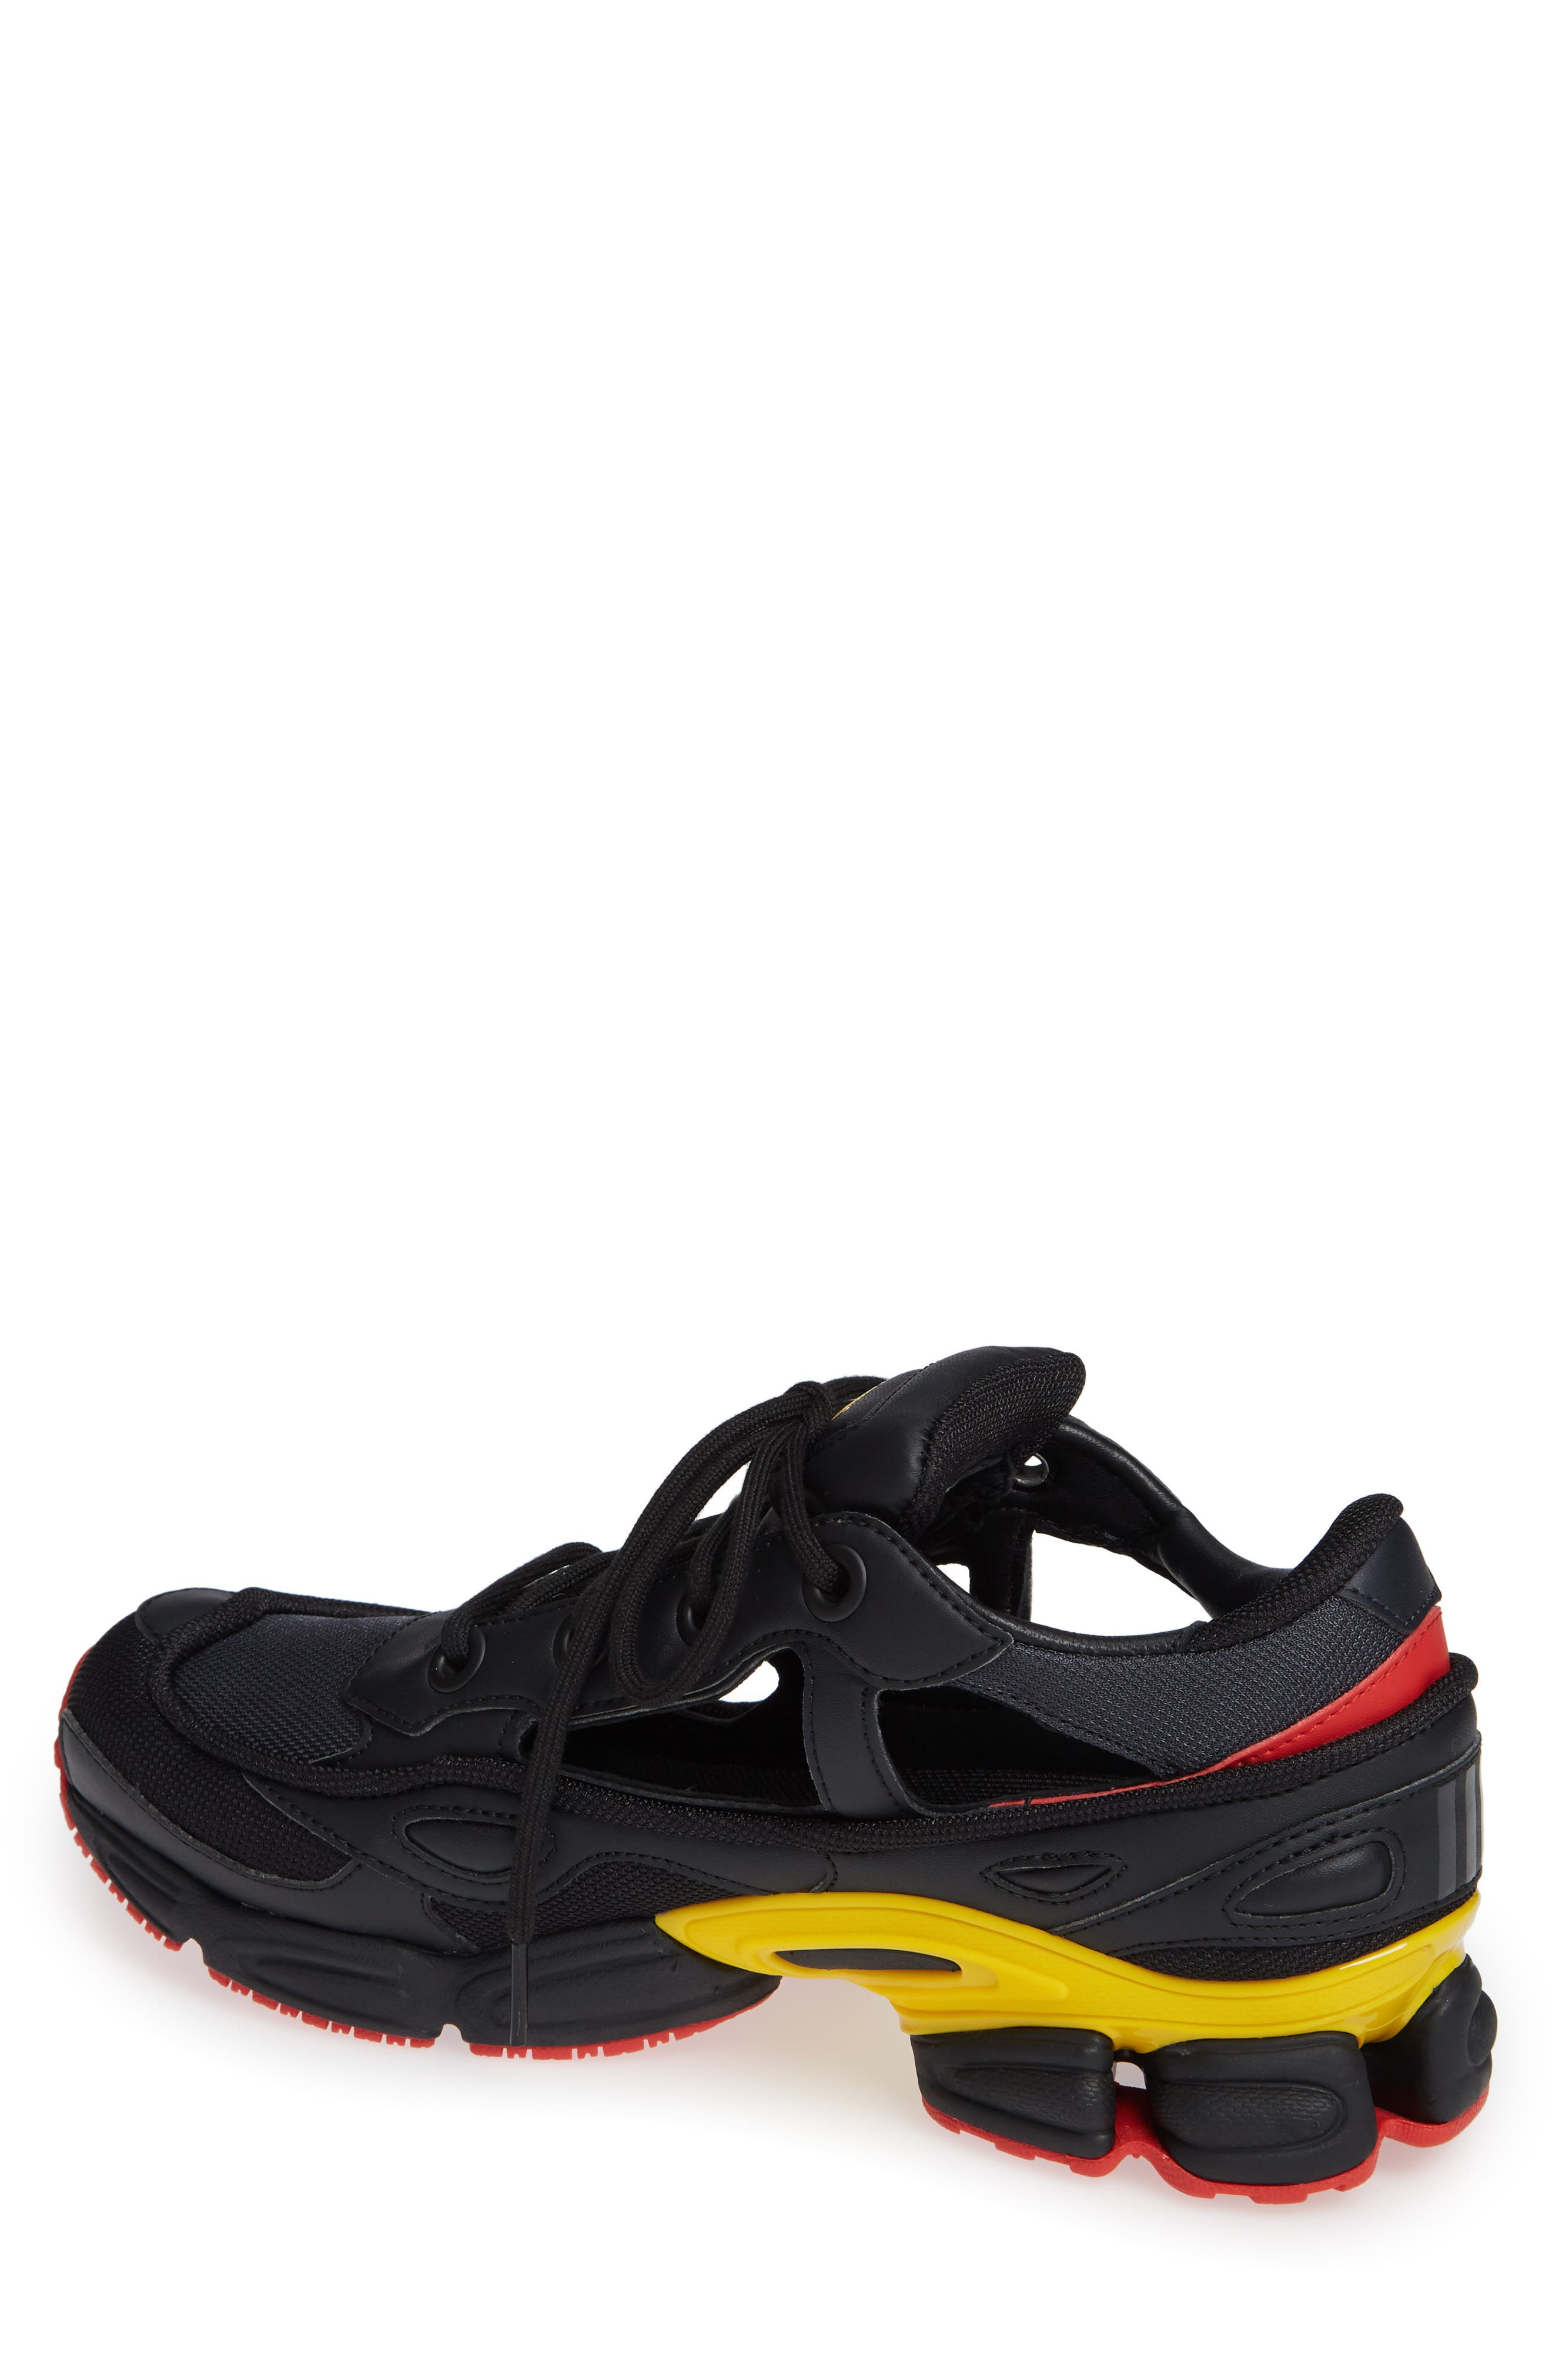 adidas by Raf Simons Replicant Ozweego Sneaker,                             Alternate thumbnail 2, color,                             001